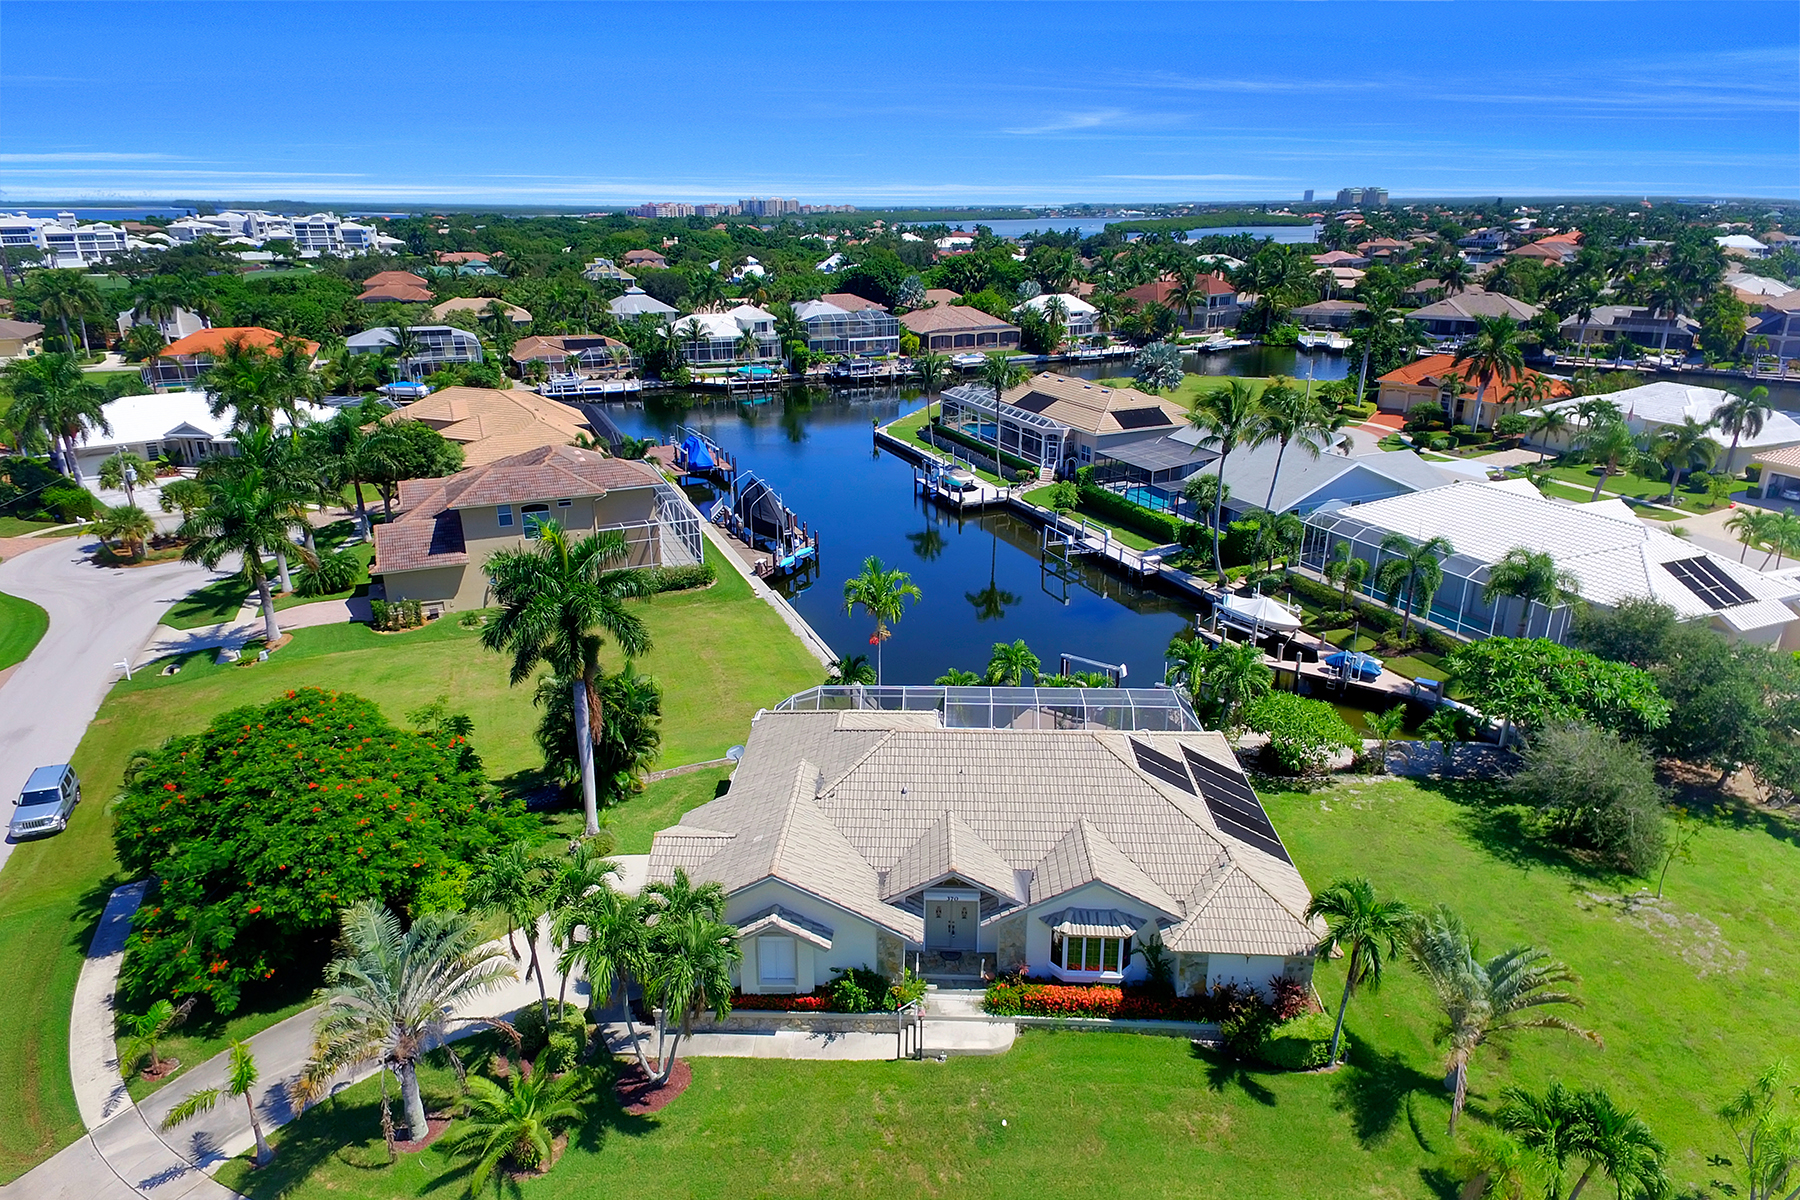 Single Family Home for Sale at MARCO ISLAND 370 Cottage Ct, Marco Island, Florida 34145 United States